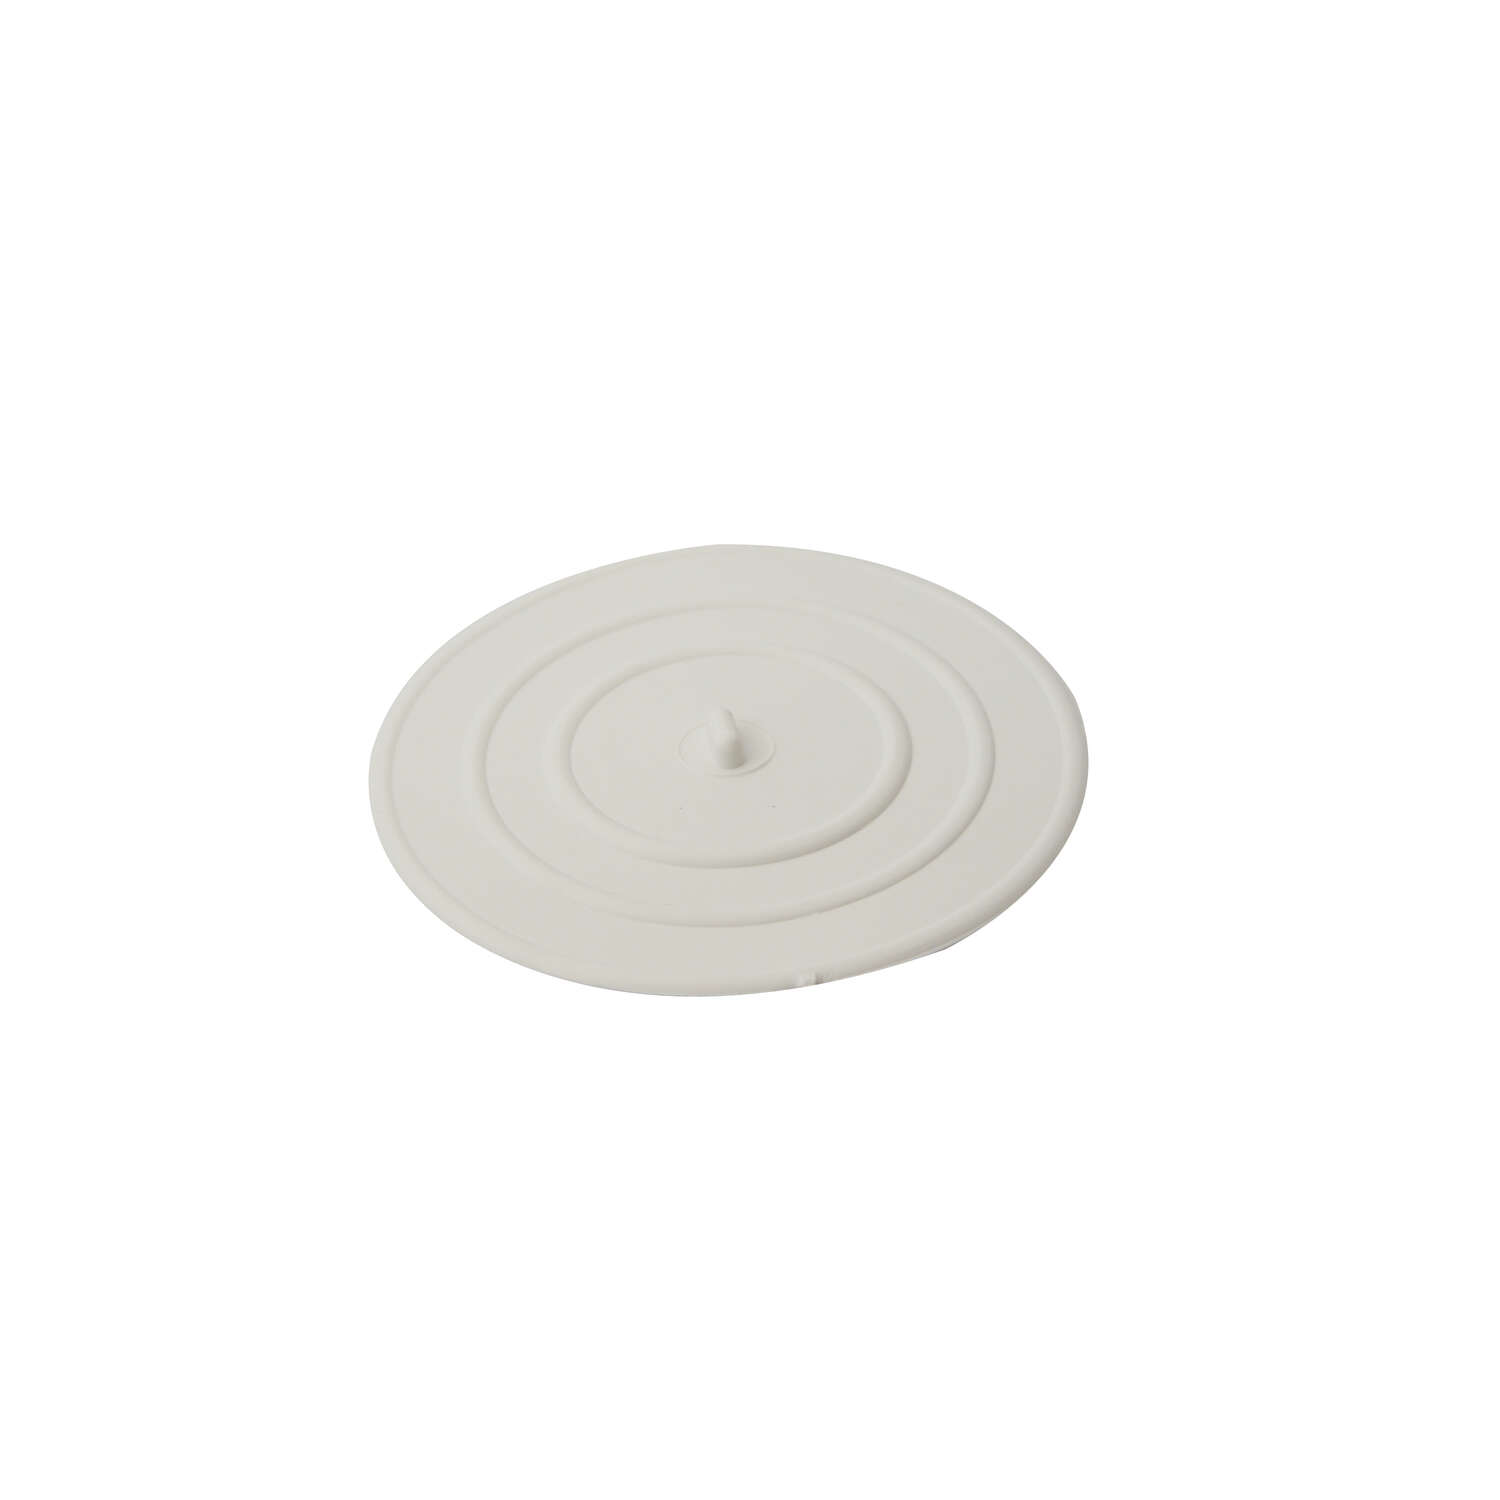 Ace  4-1/2 in. Dia. Drain Stopper  Rubber  Nickel Plated